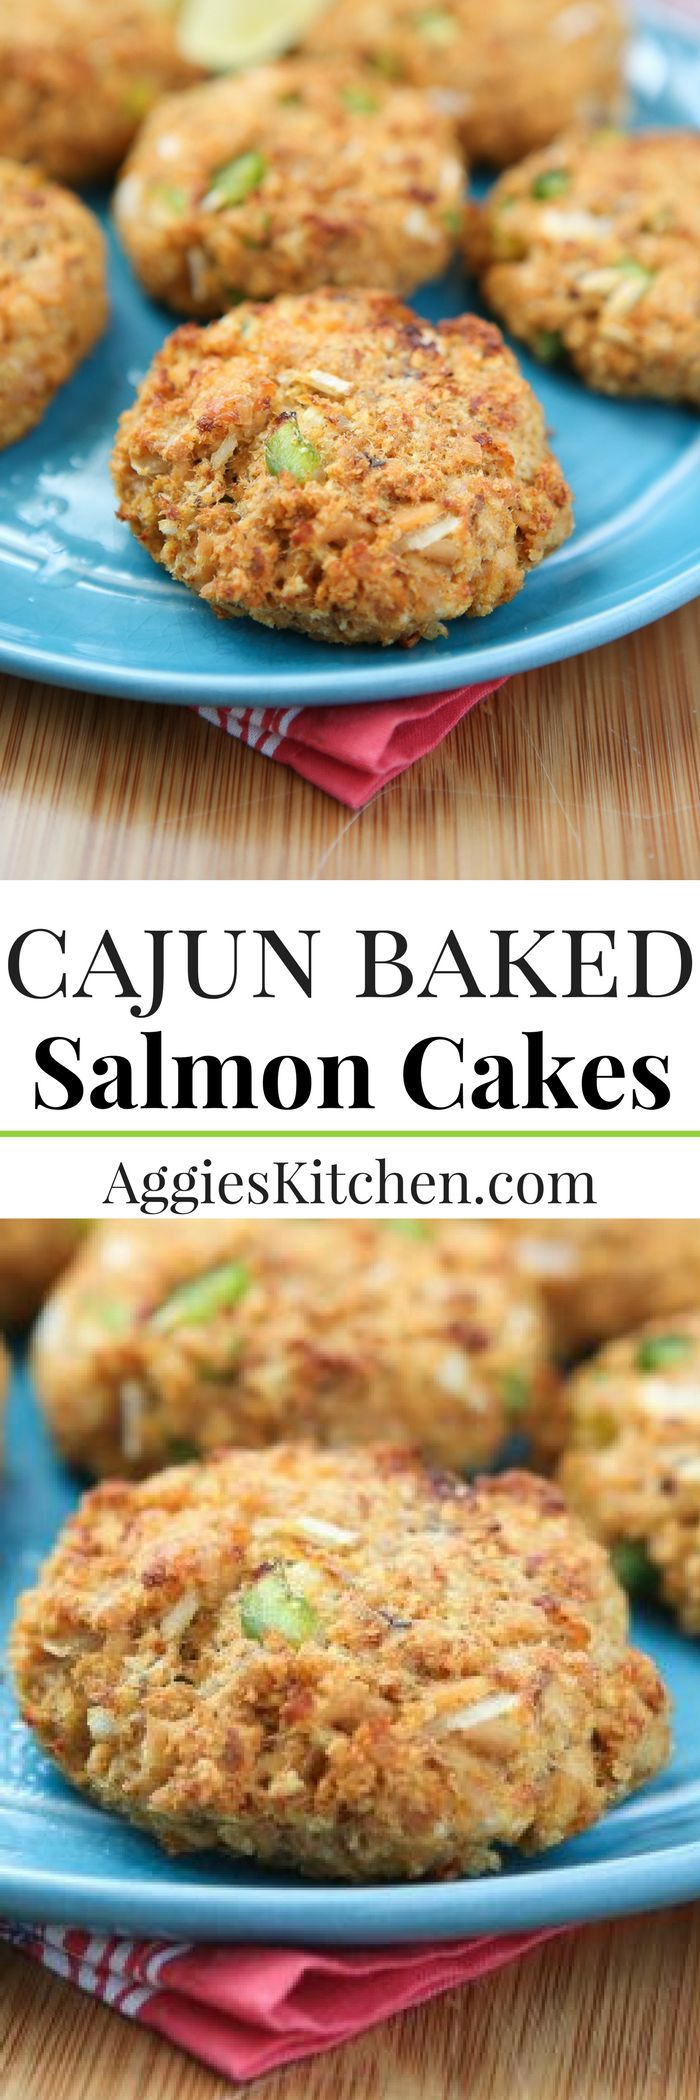 how long to bake salmon patties in the oven